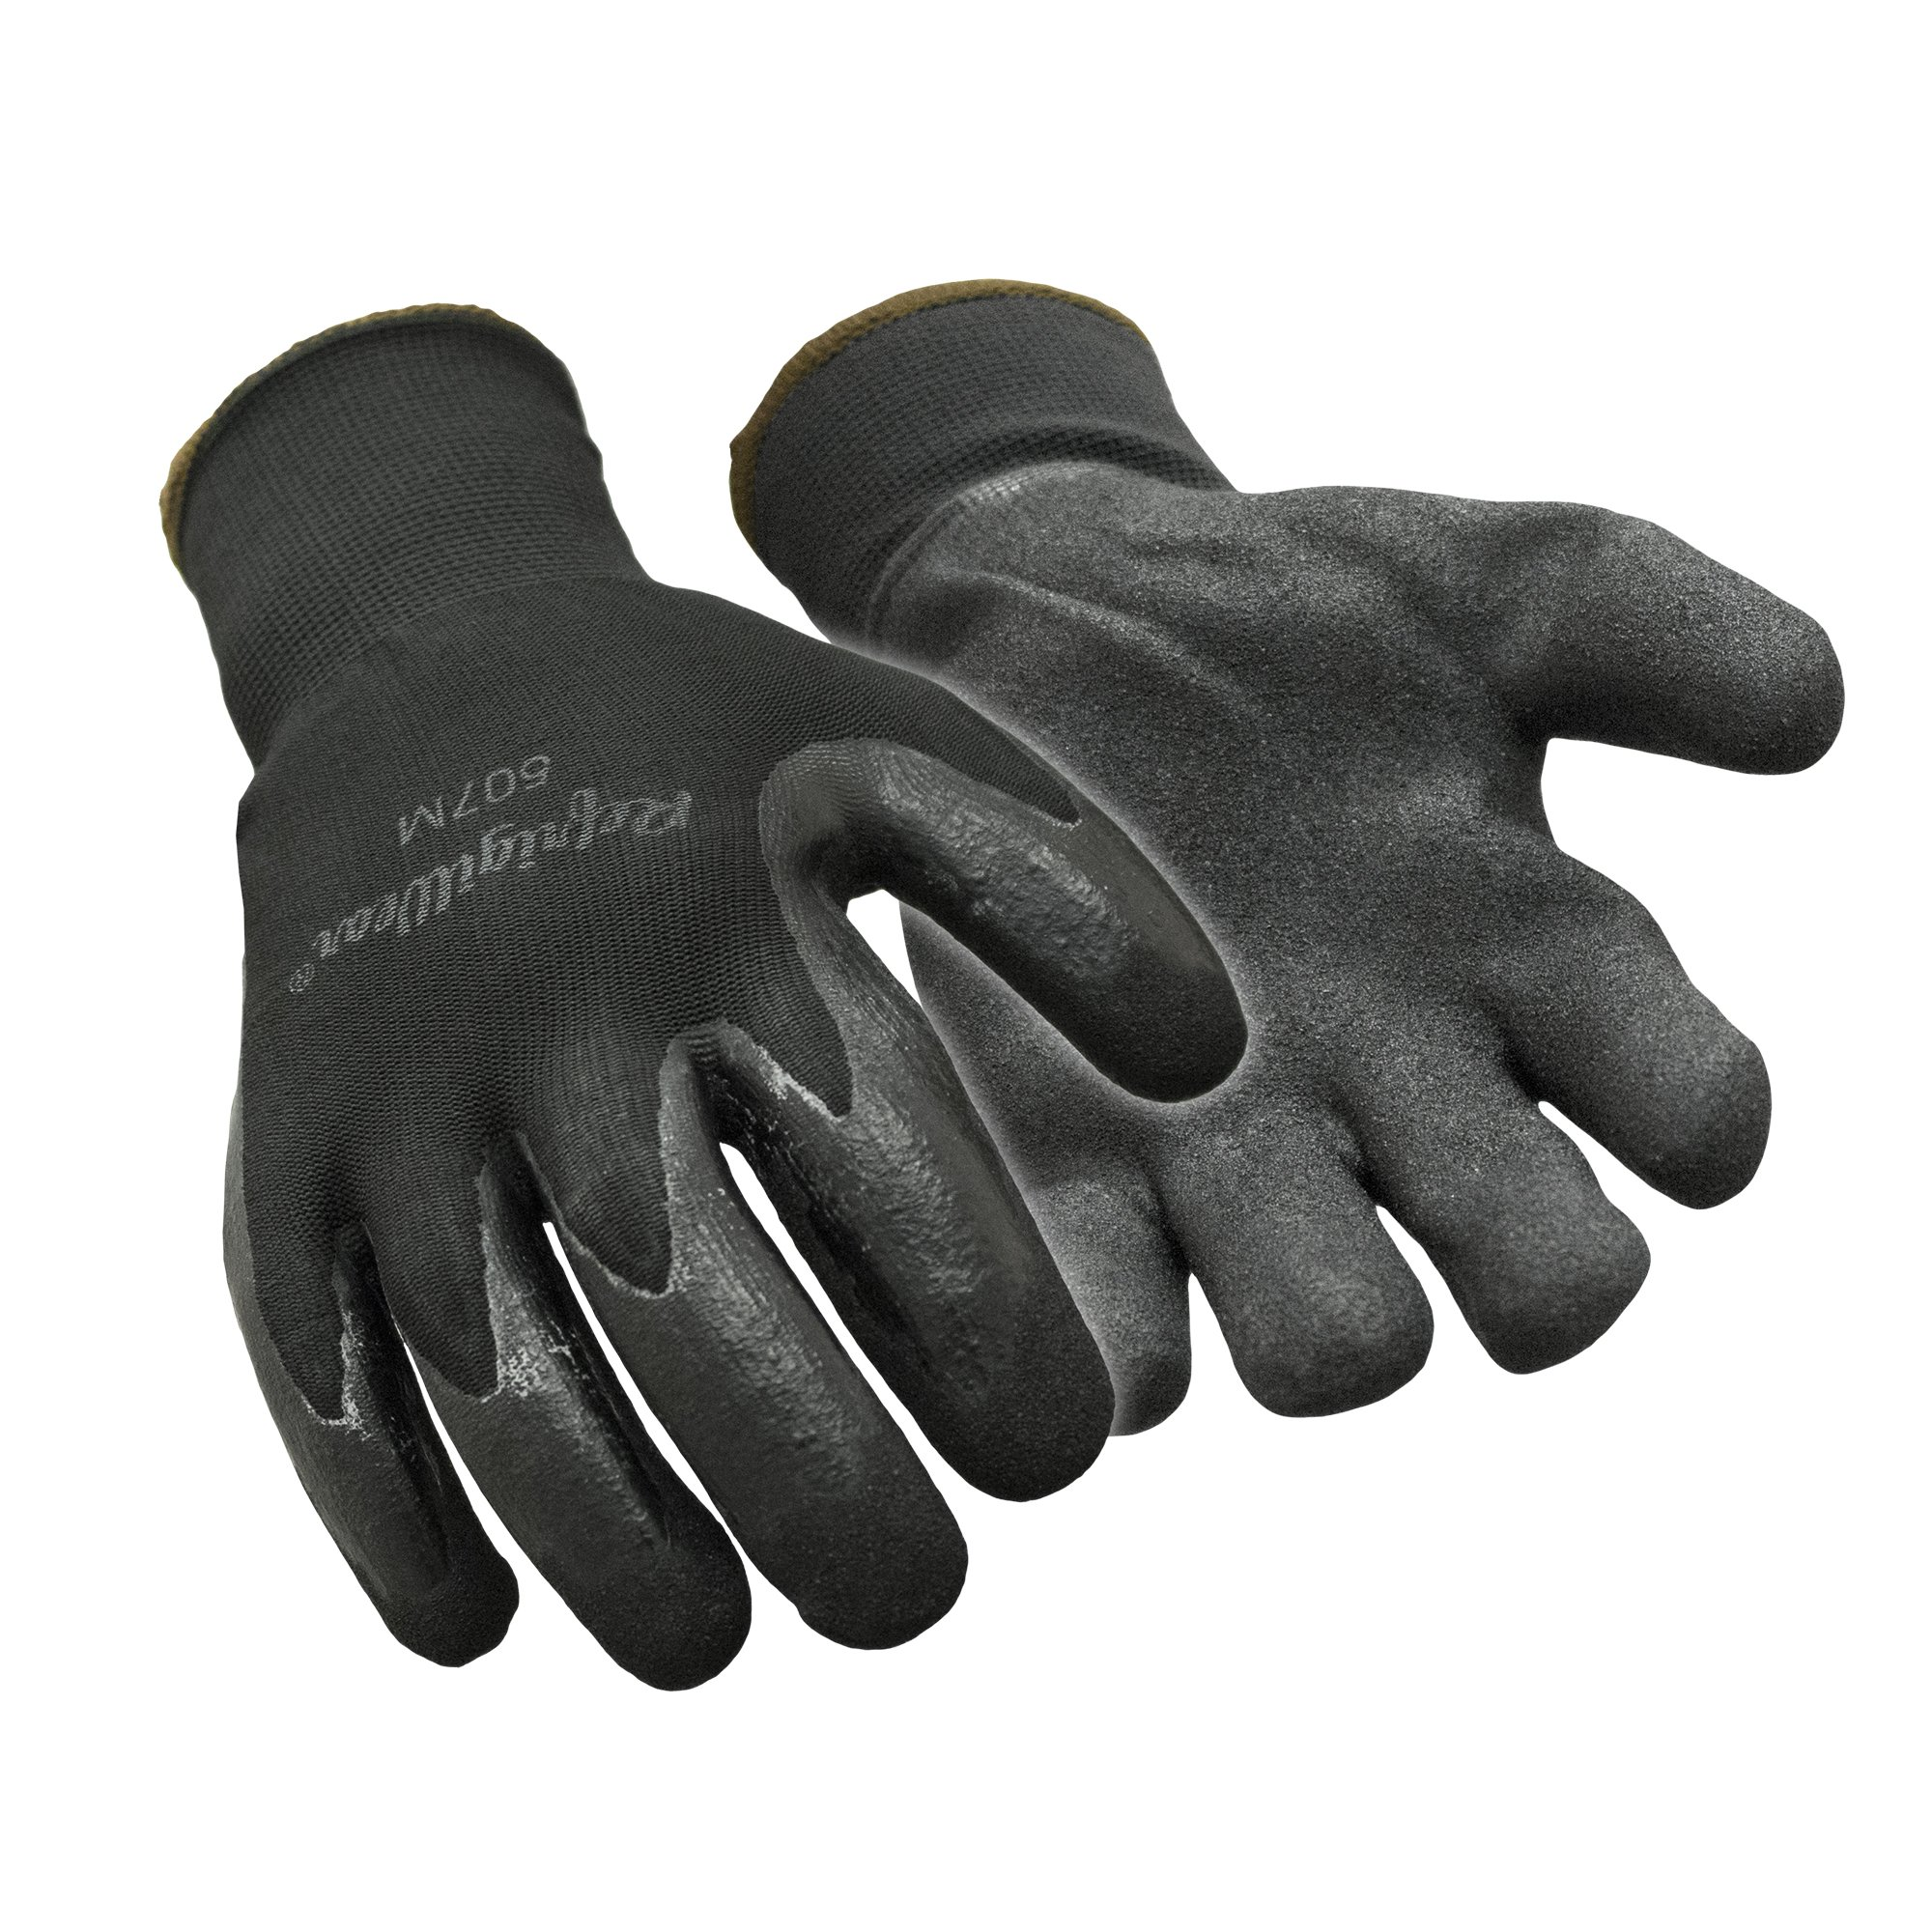 RefrigiWear Warm Dual Layer Thermal Ergo Grip Work Gloves with Textured Rubber Nitrile Coated Palm (Black, Medium)